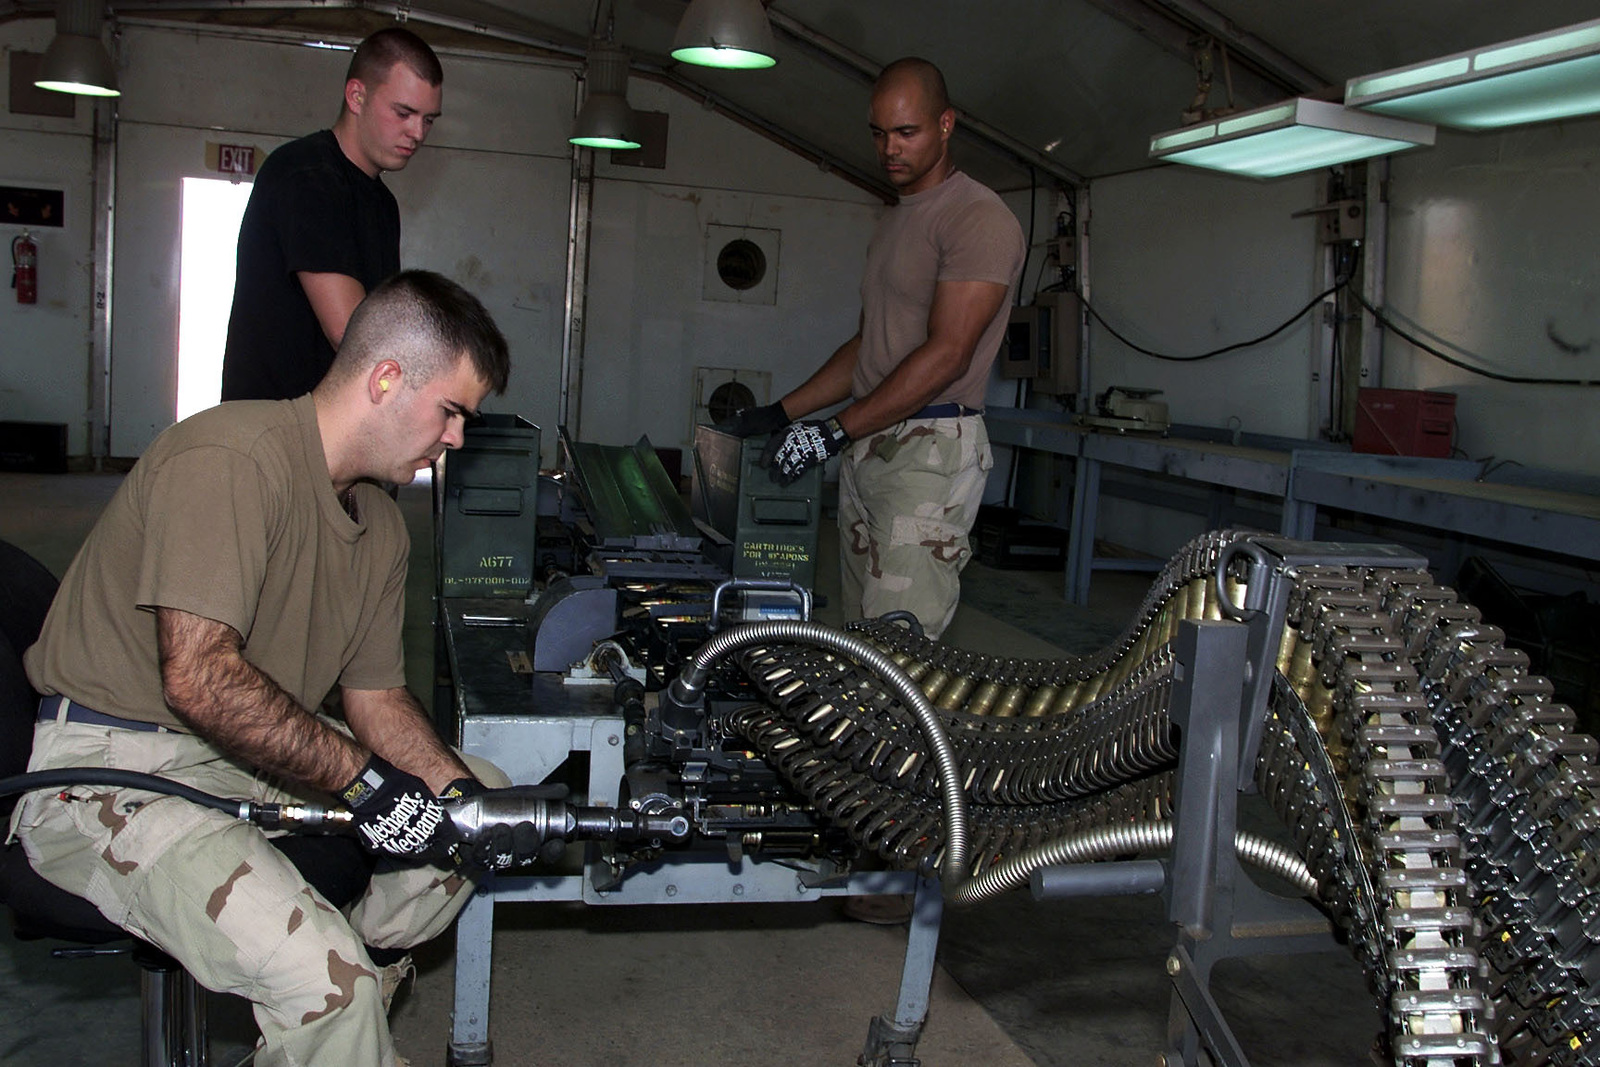 US Air Force AIRMAN First Class Lance Peak, USAF AIRMAN First Class Bradford Neumann, and USAF AIRMAN First Class Horace Bowler, 363rd Expeditionary Maintenance Squadron, Prince Sultan Air Base, Saudi Arabia, load 20mm rounds into a universal ammunition loading system. The 363rd is part of the coalition force here to support Operation SOUTHERN WATCH, a military effort to enforce the no-fly and no-drive zone in Southern Iraq